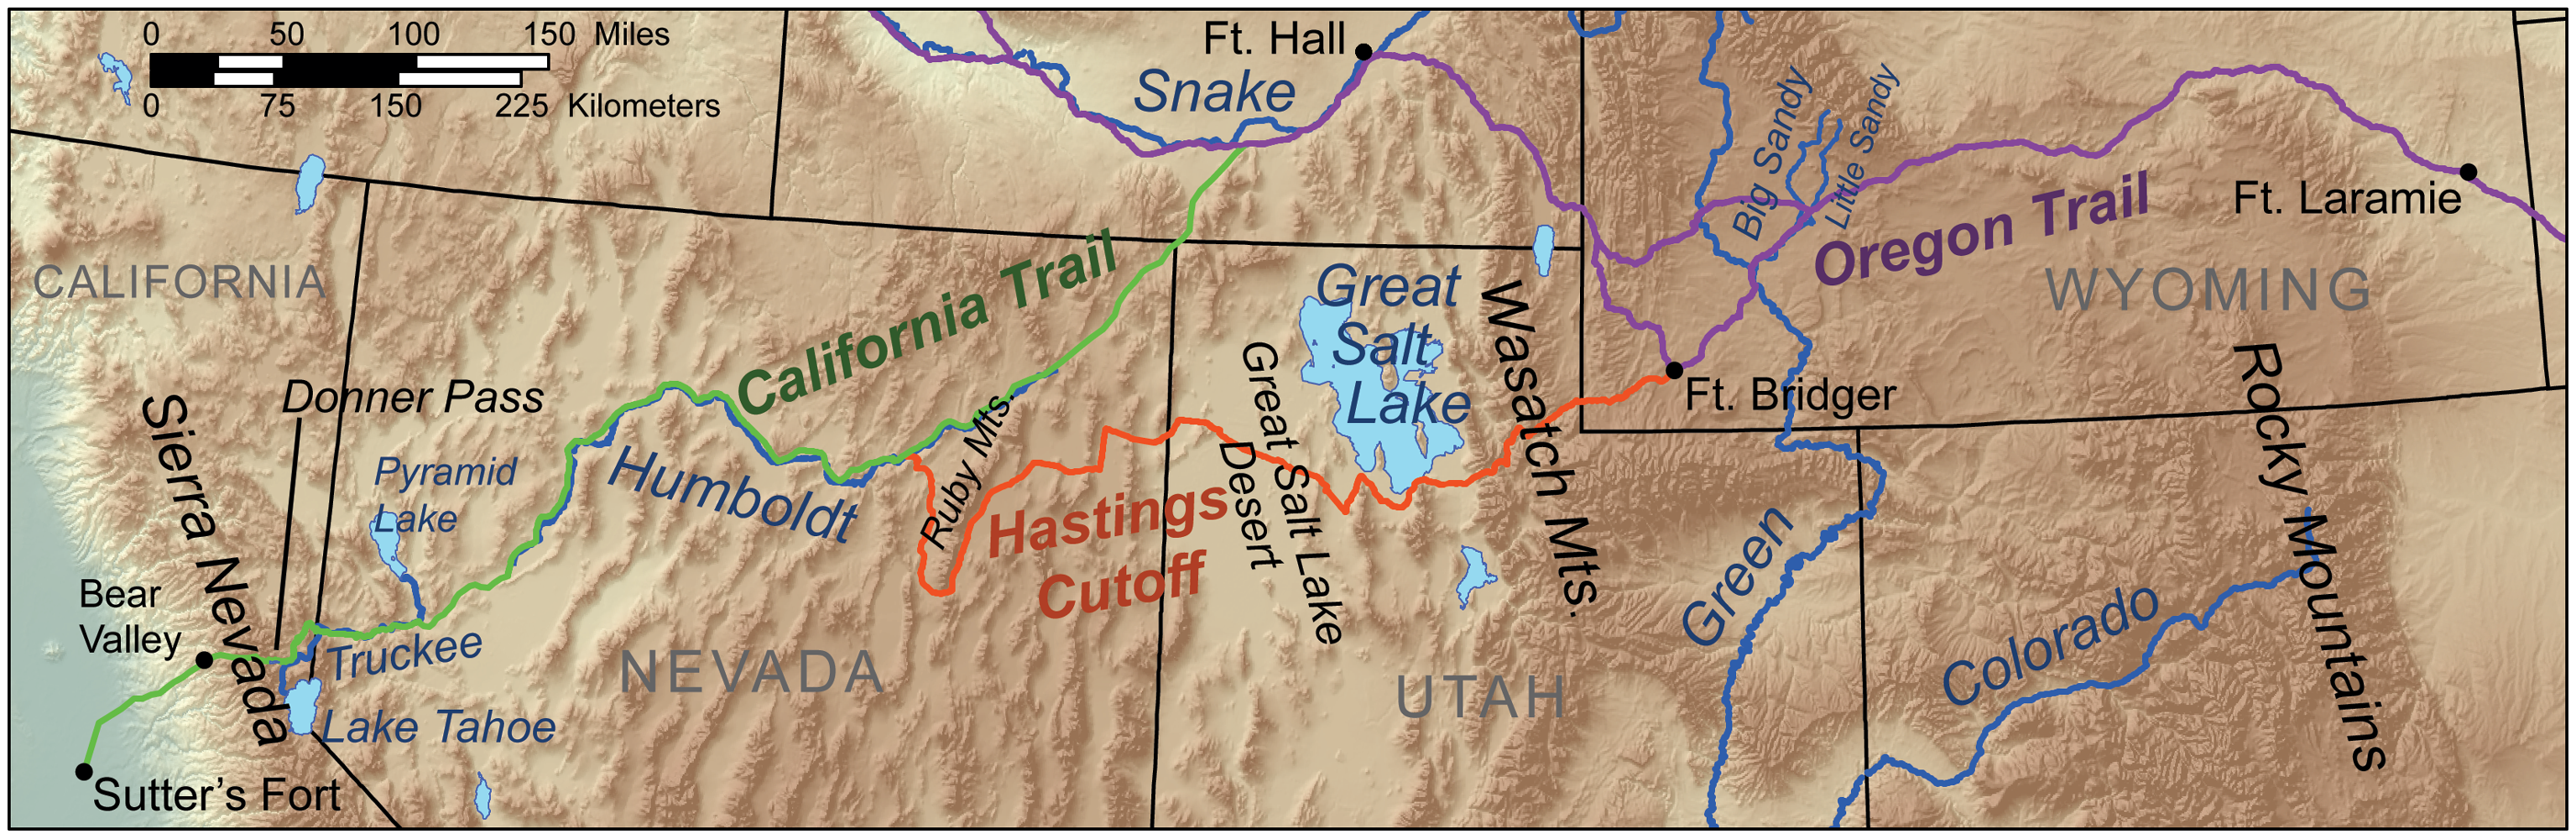 A map of the route taken by the Donner Party, including the ill-advised Hastings Cutoff